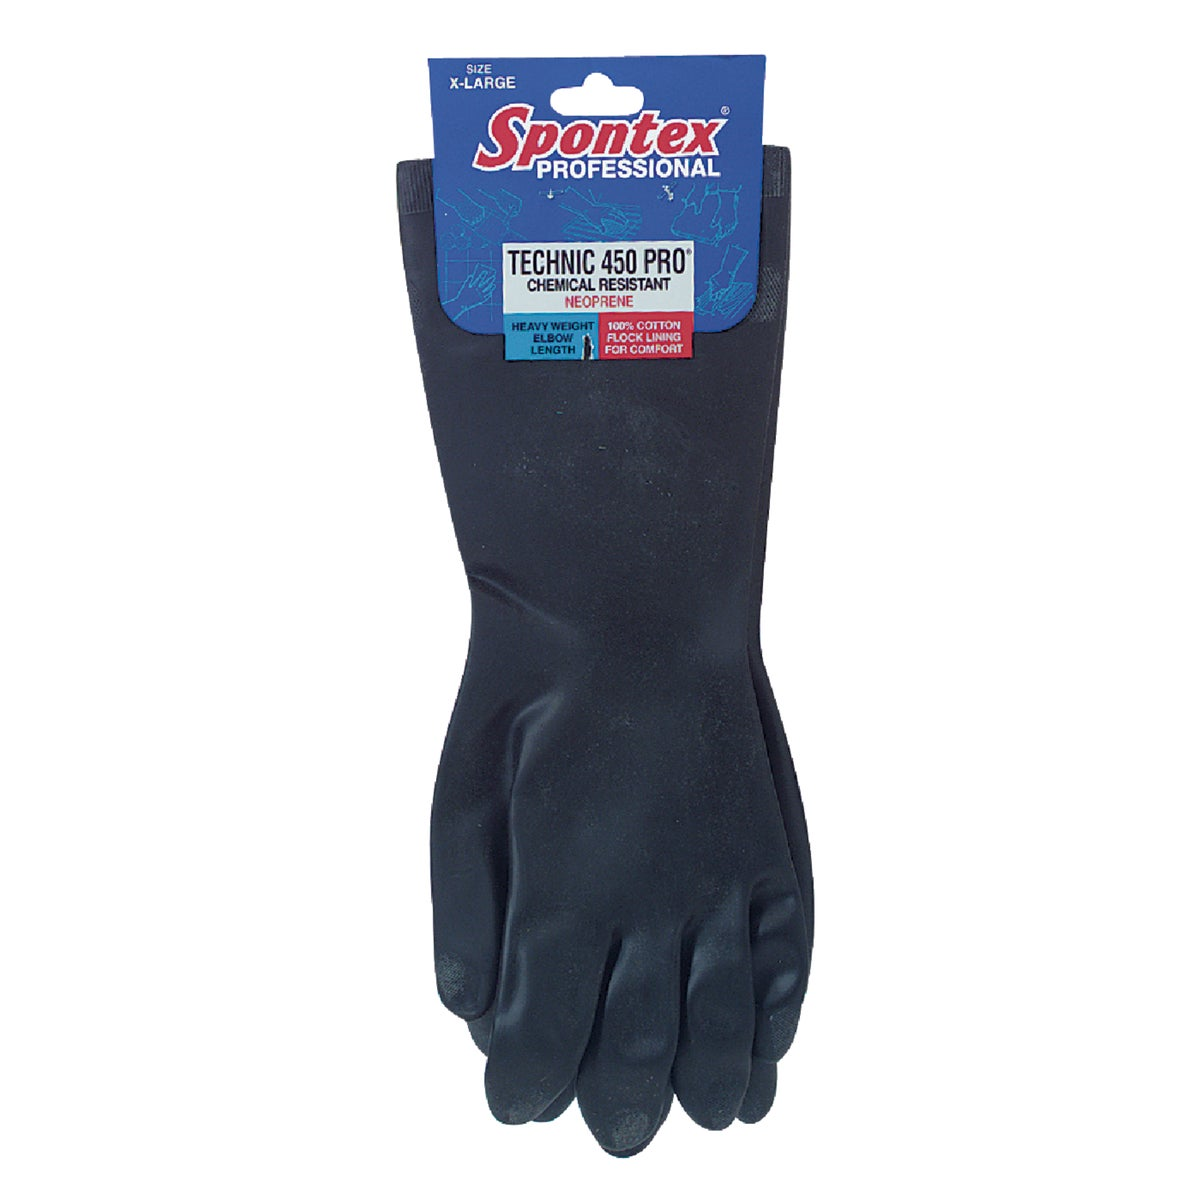 X-LARGE RUBBER GLOVES